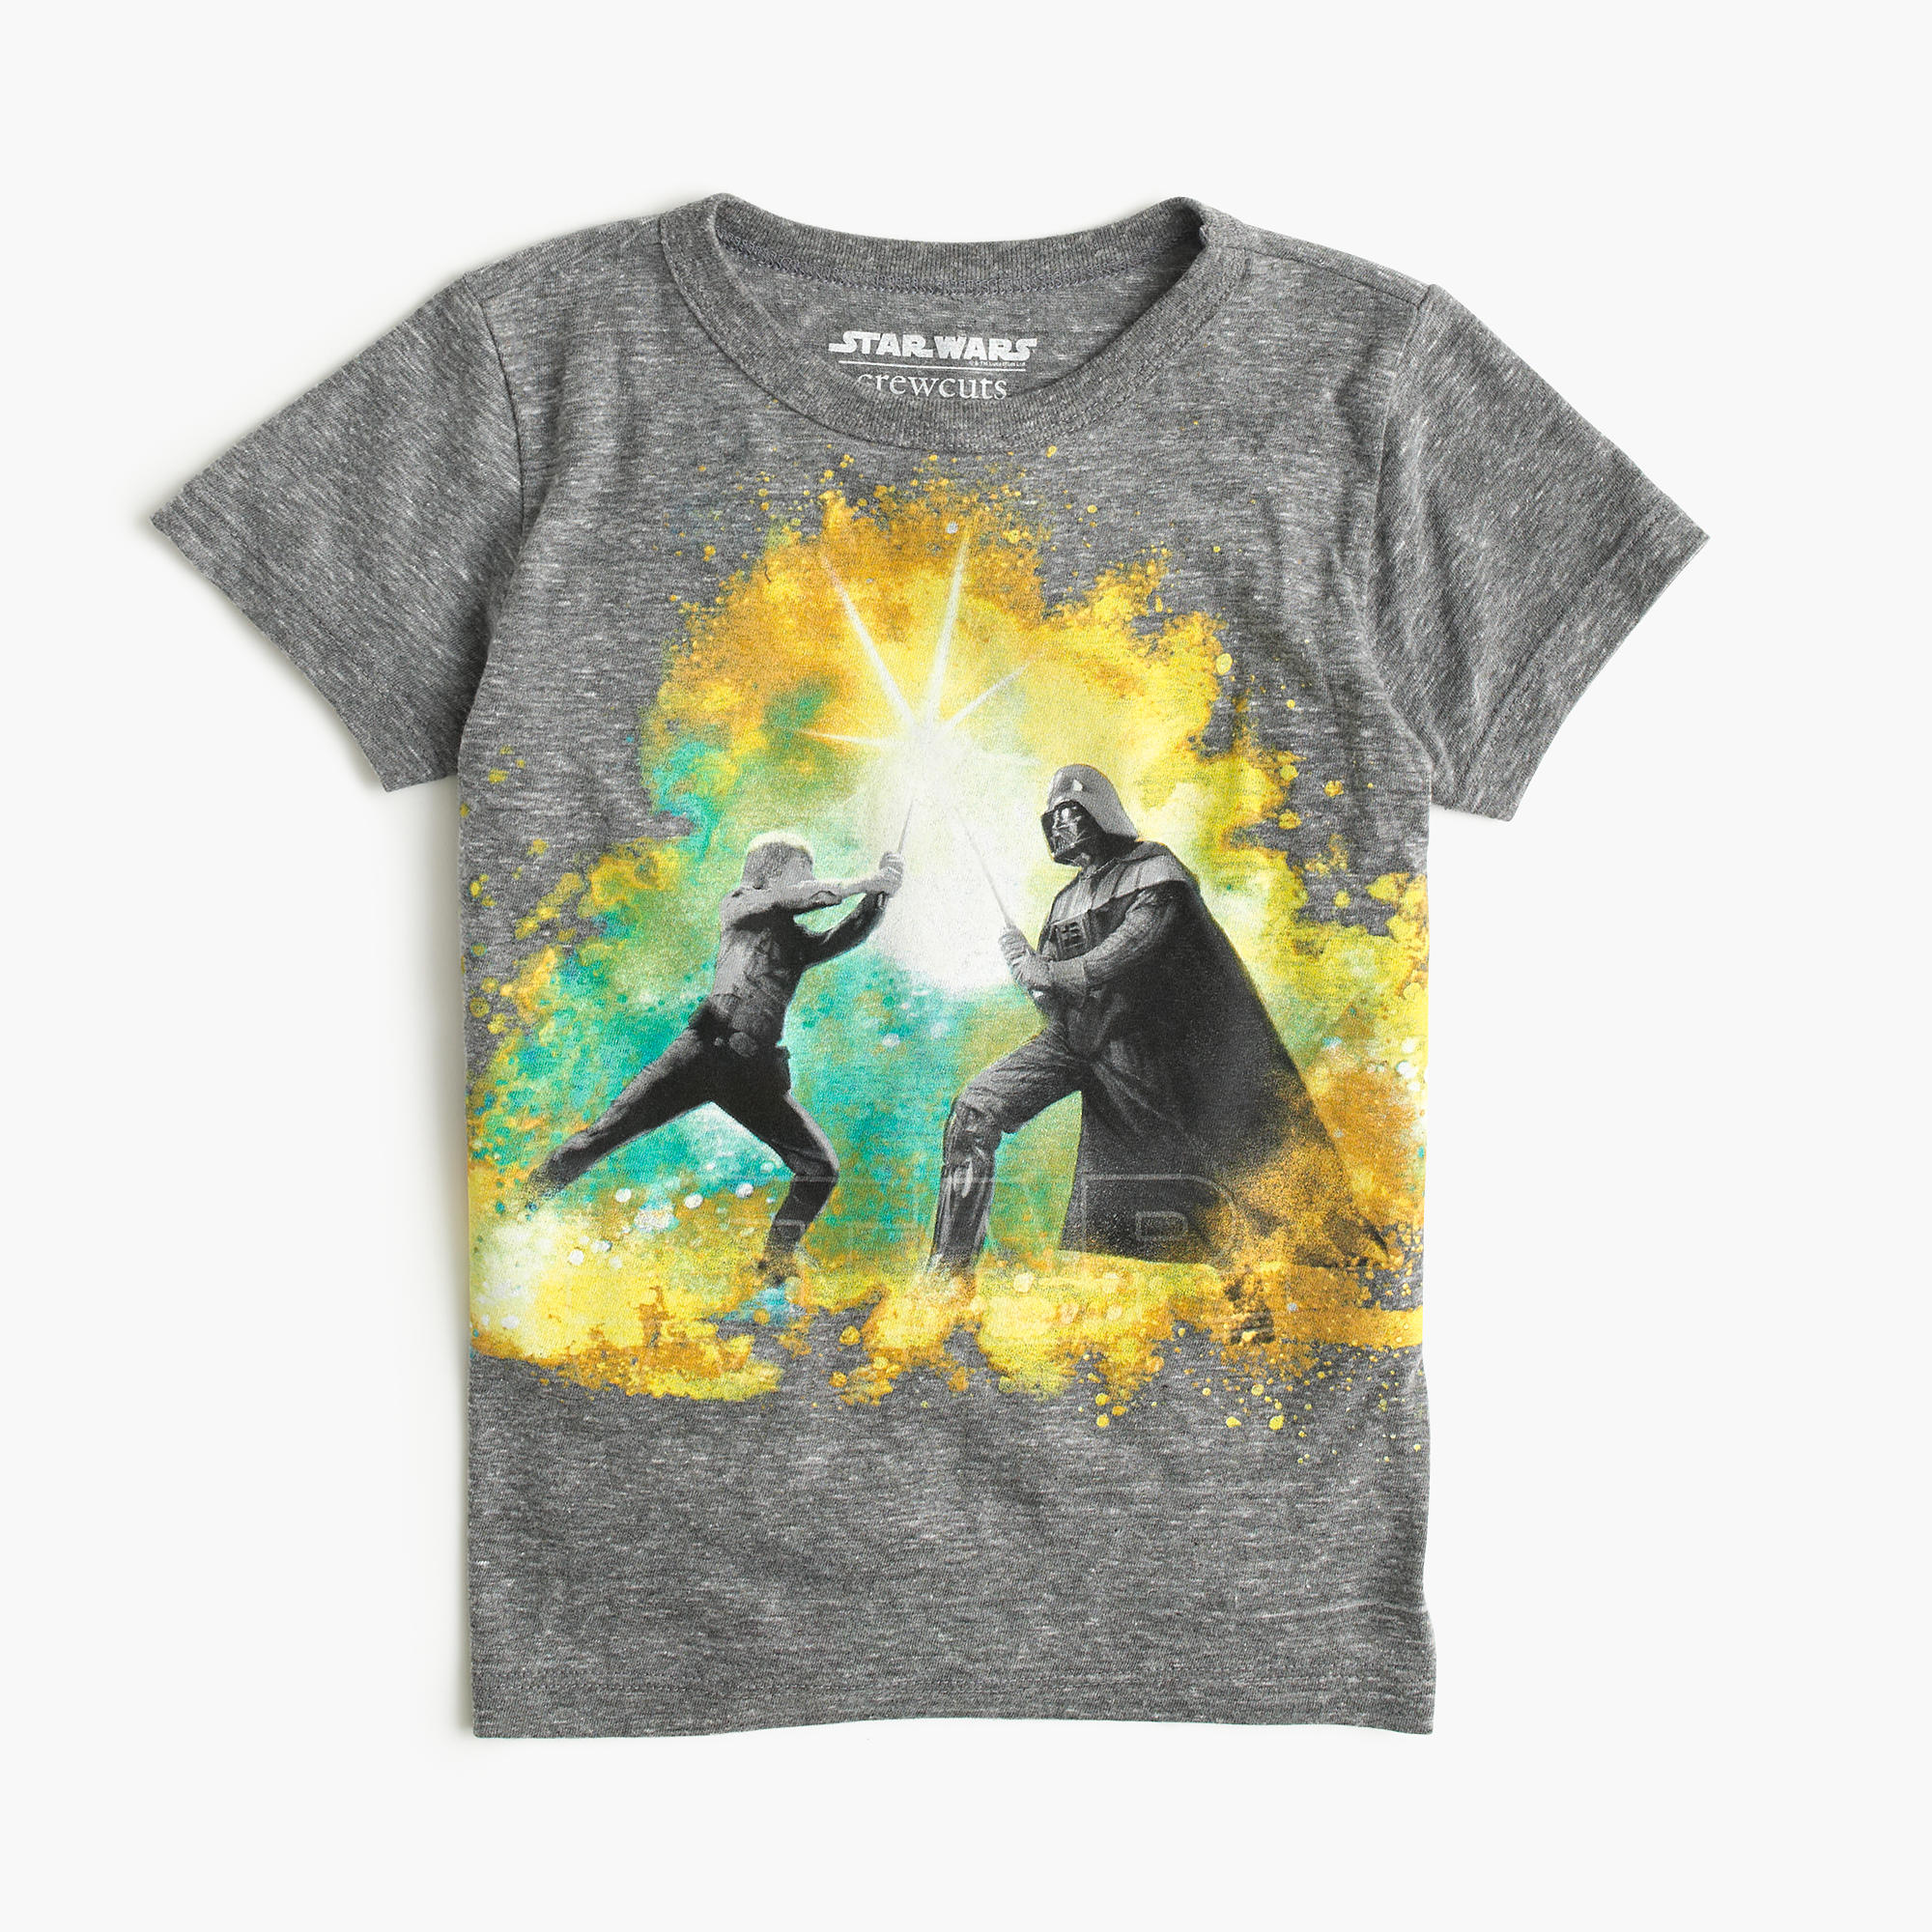 kids 39 star wars for crewcuts glow in the dark skywalker vs vader t shirt j crew. Black Bedroom Furniture Sets. Home Design Ideas